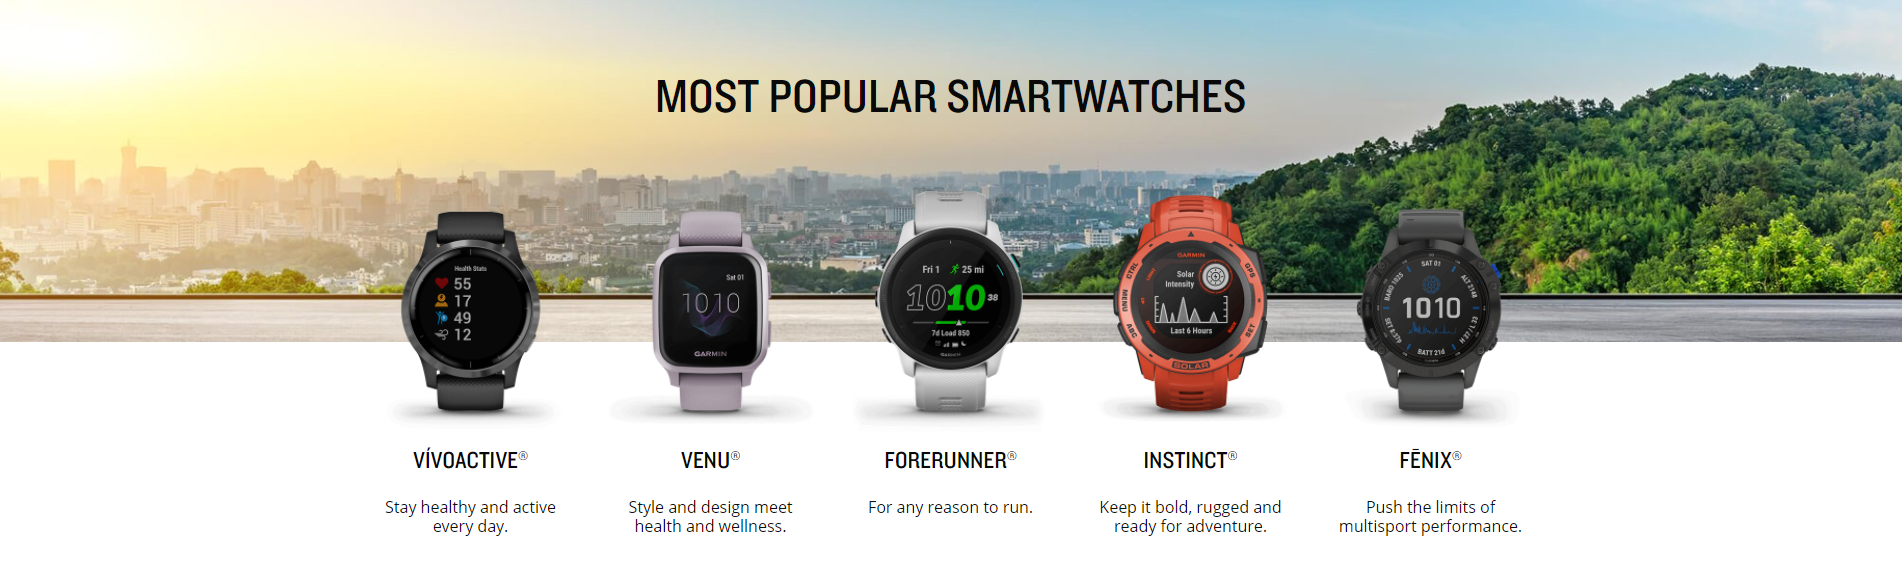 All Wearables & Smartwatches